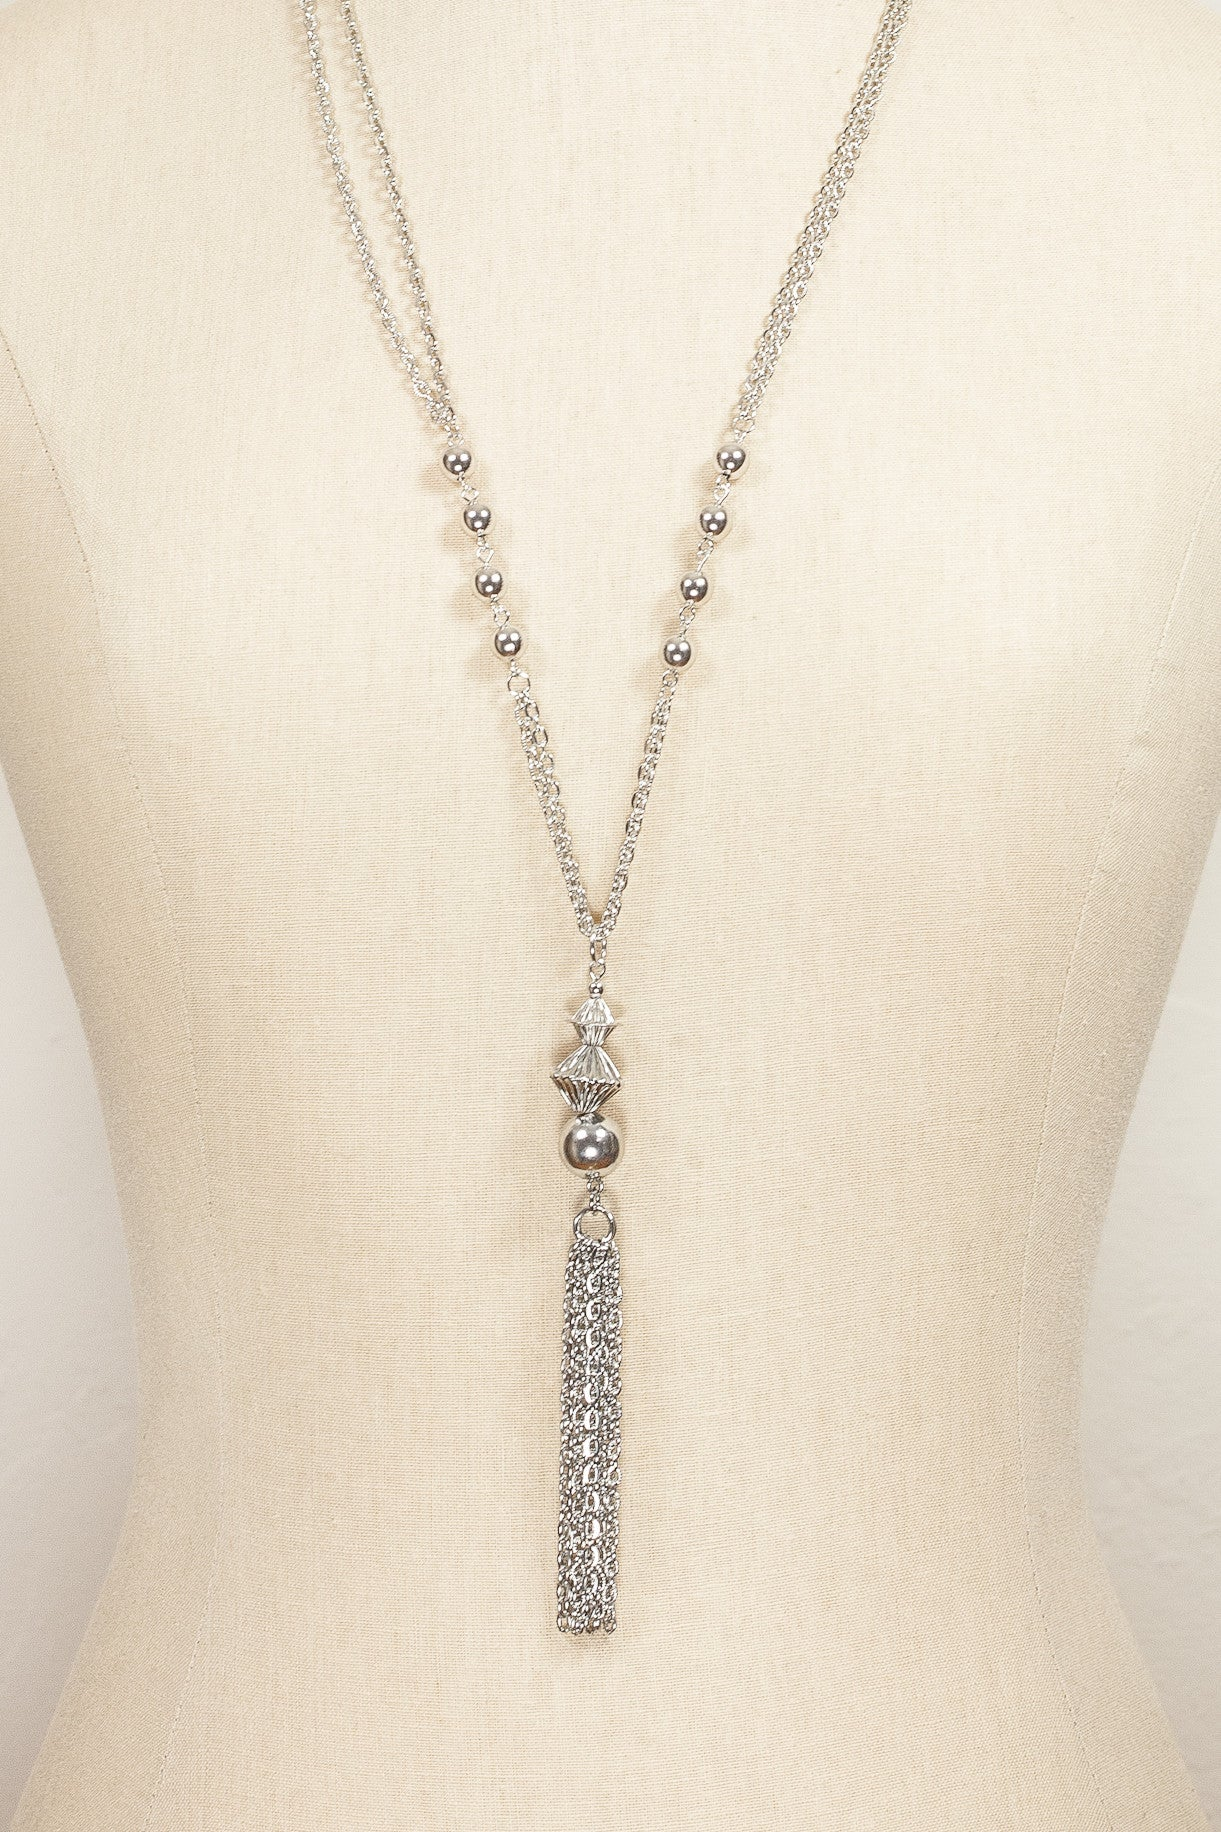 60's__Vintage__Classic Silver Tassel Necklace